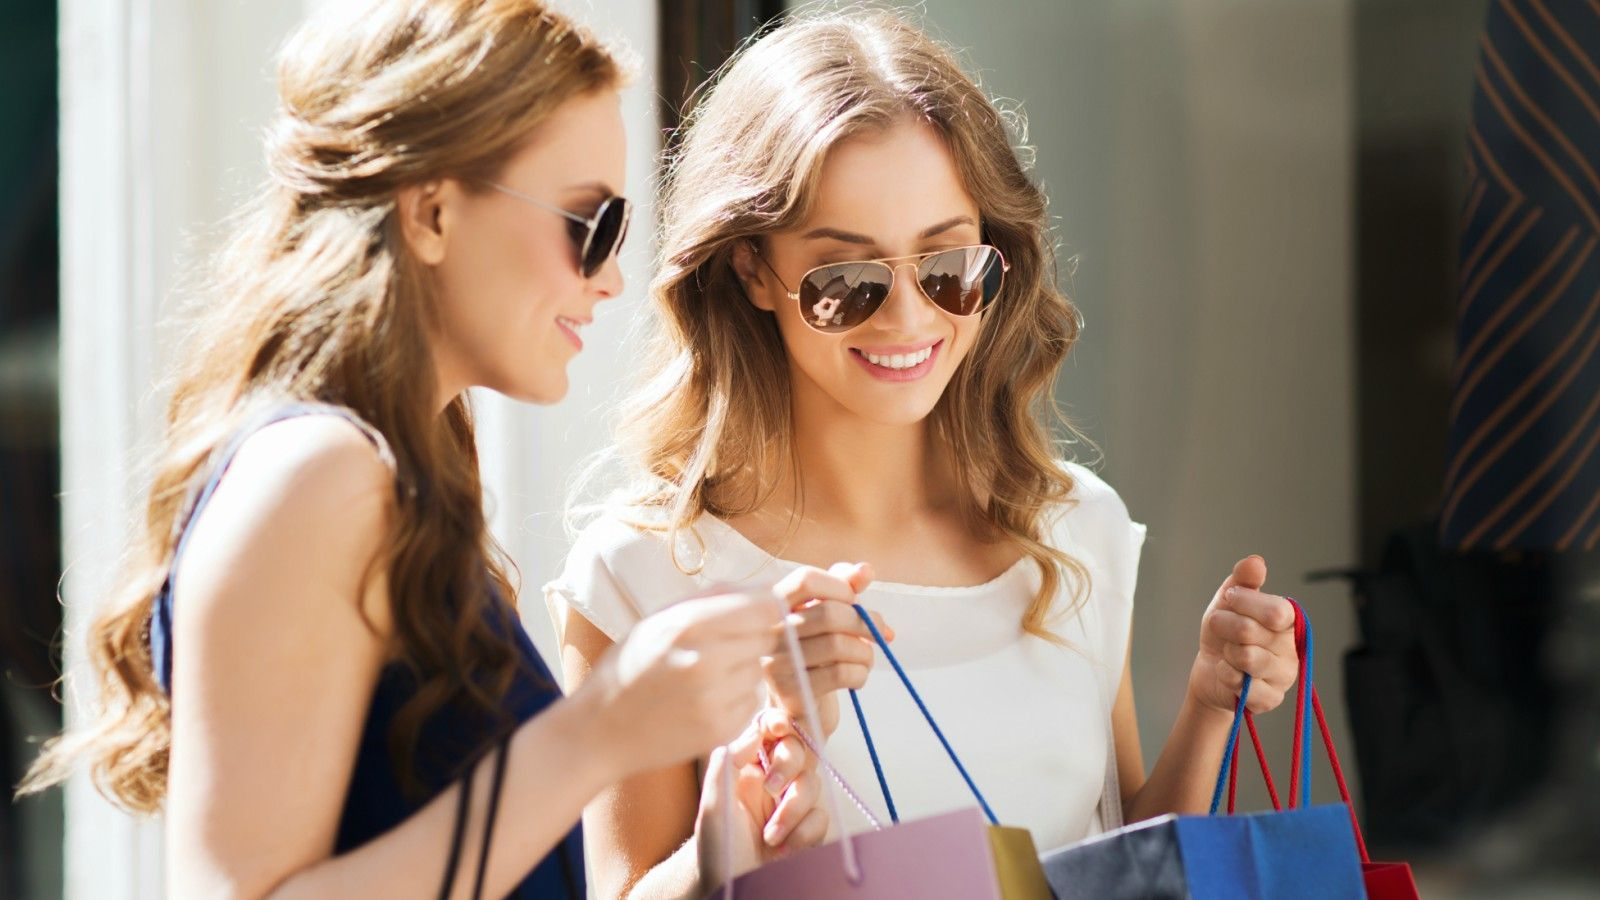 Things to do in LA - Shopping